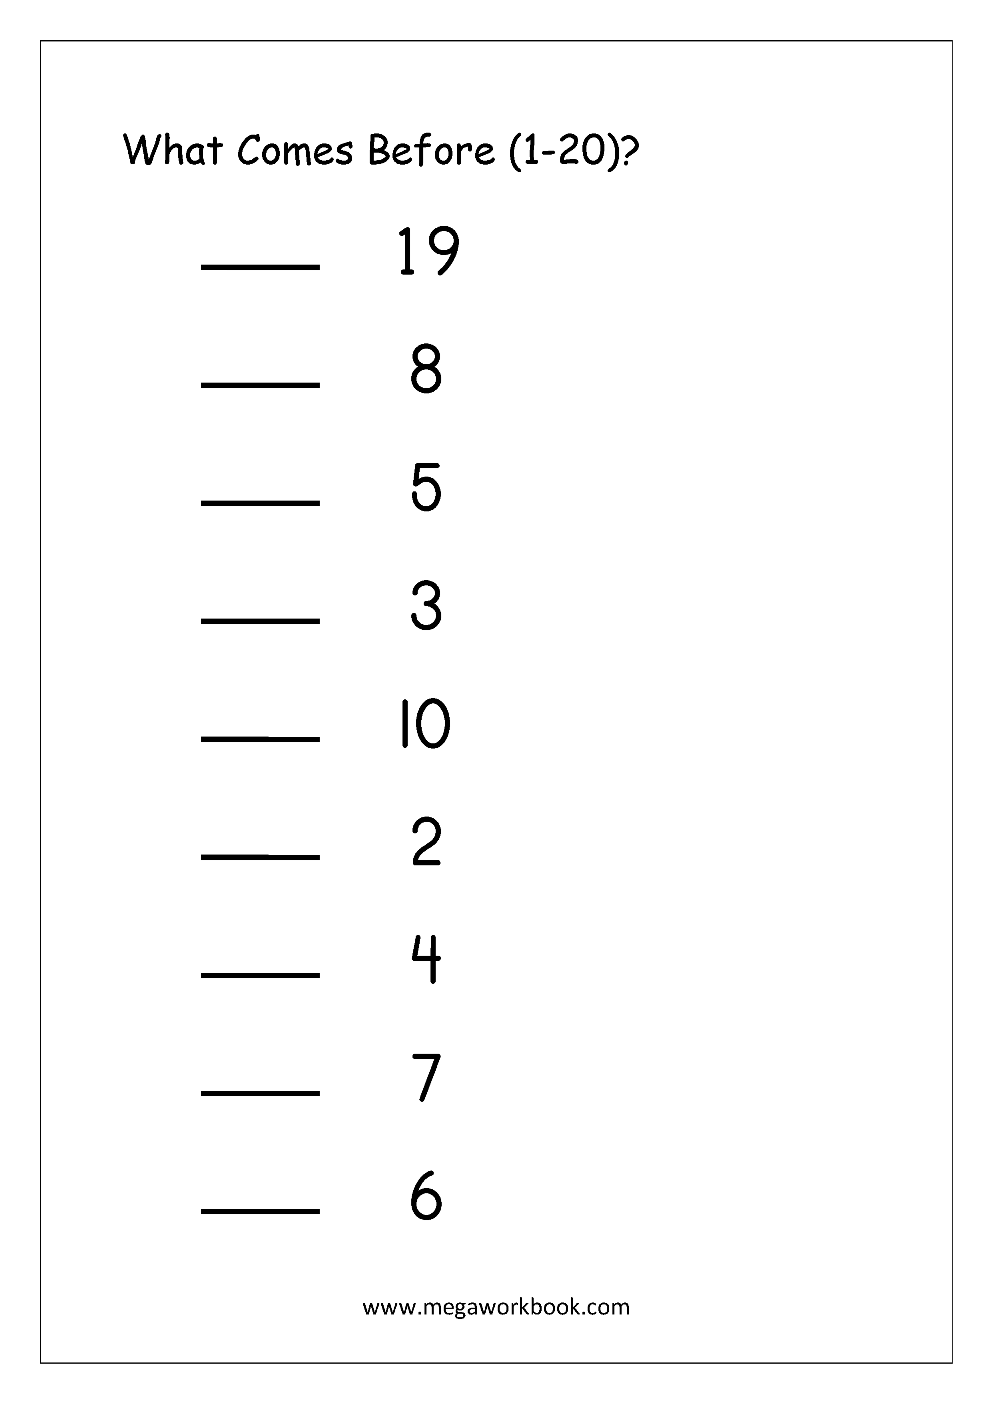 worksheet Number Worksheets 1-20 free math worksheets number ordering and missing numbers circle the incorrect in sequence 1 2 what comes after before